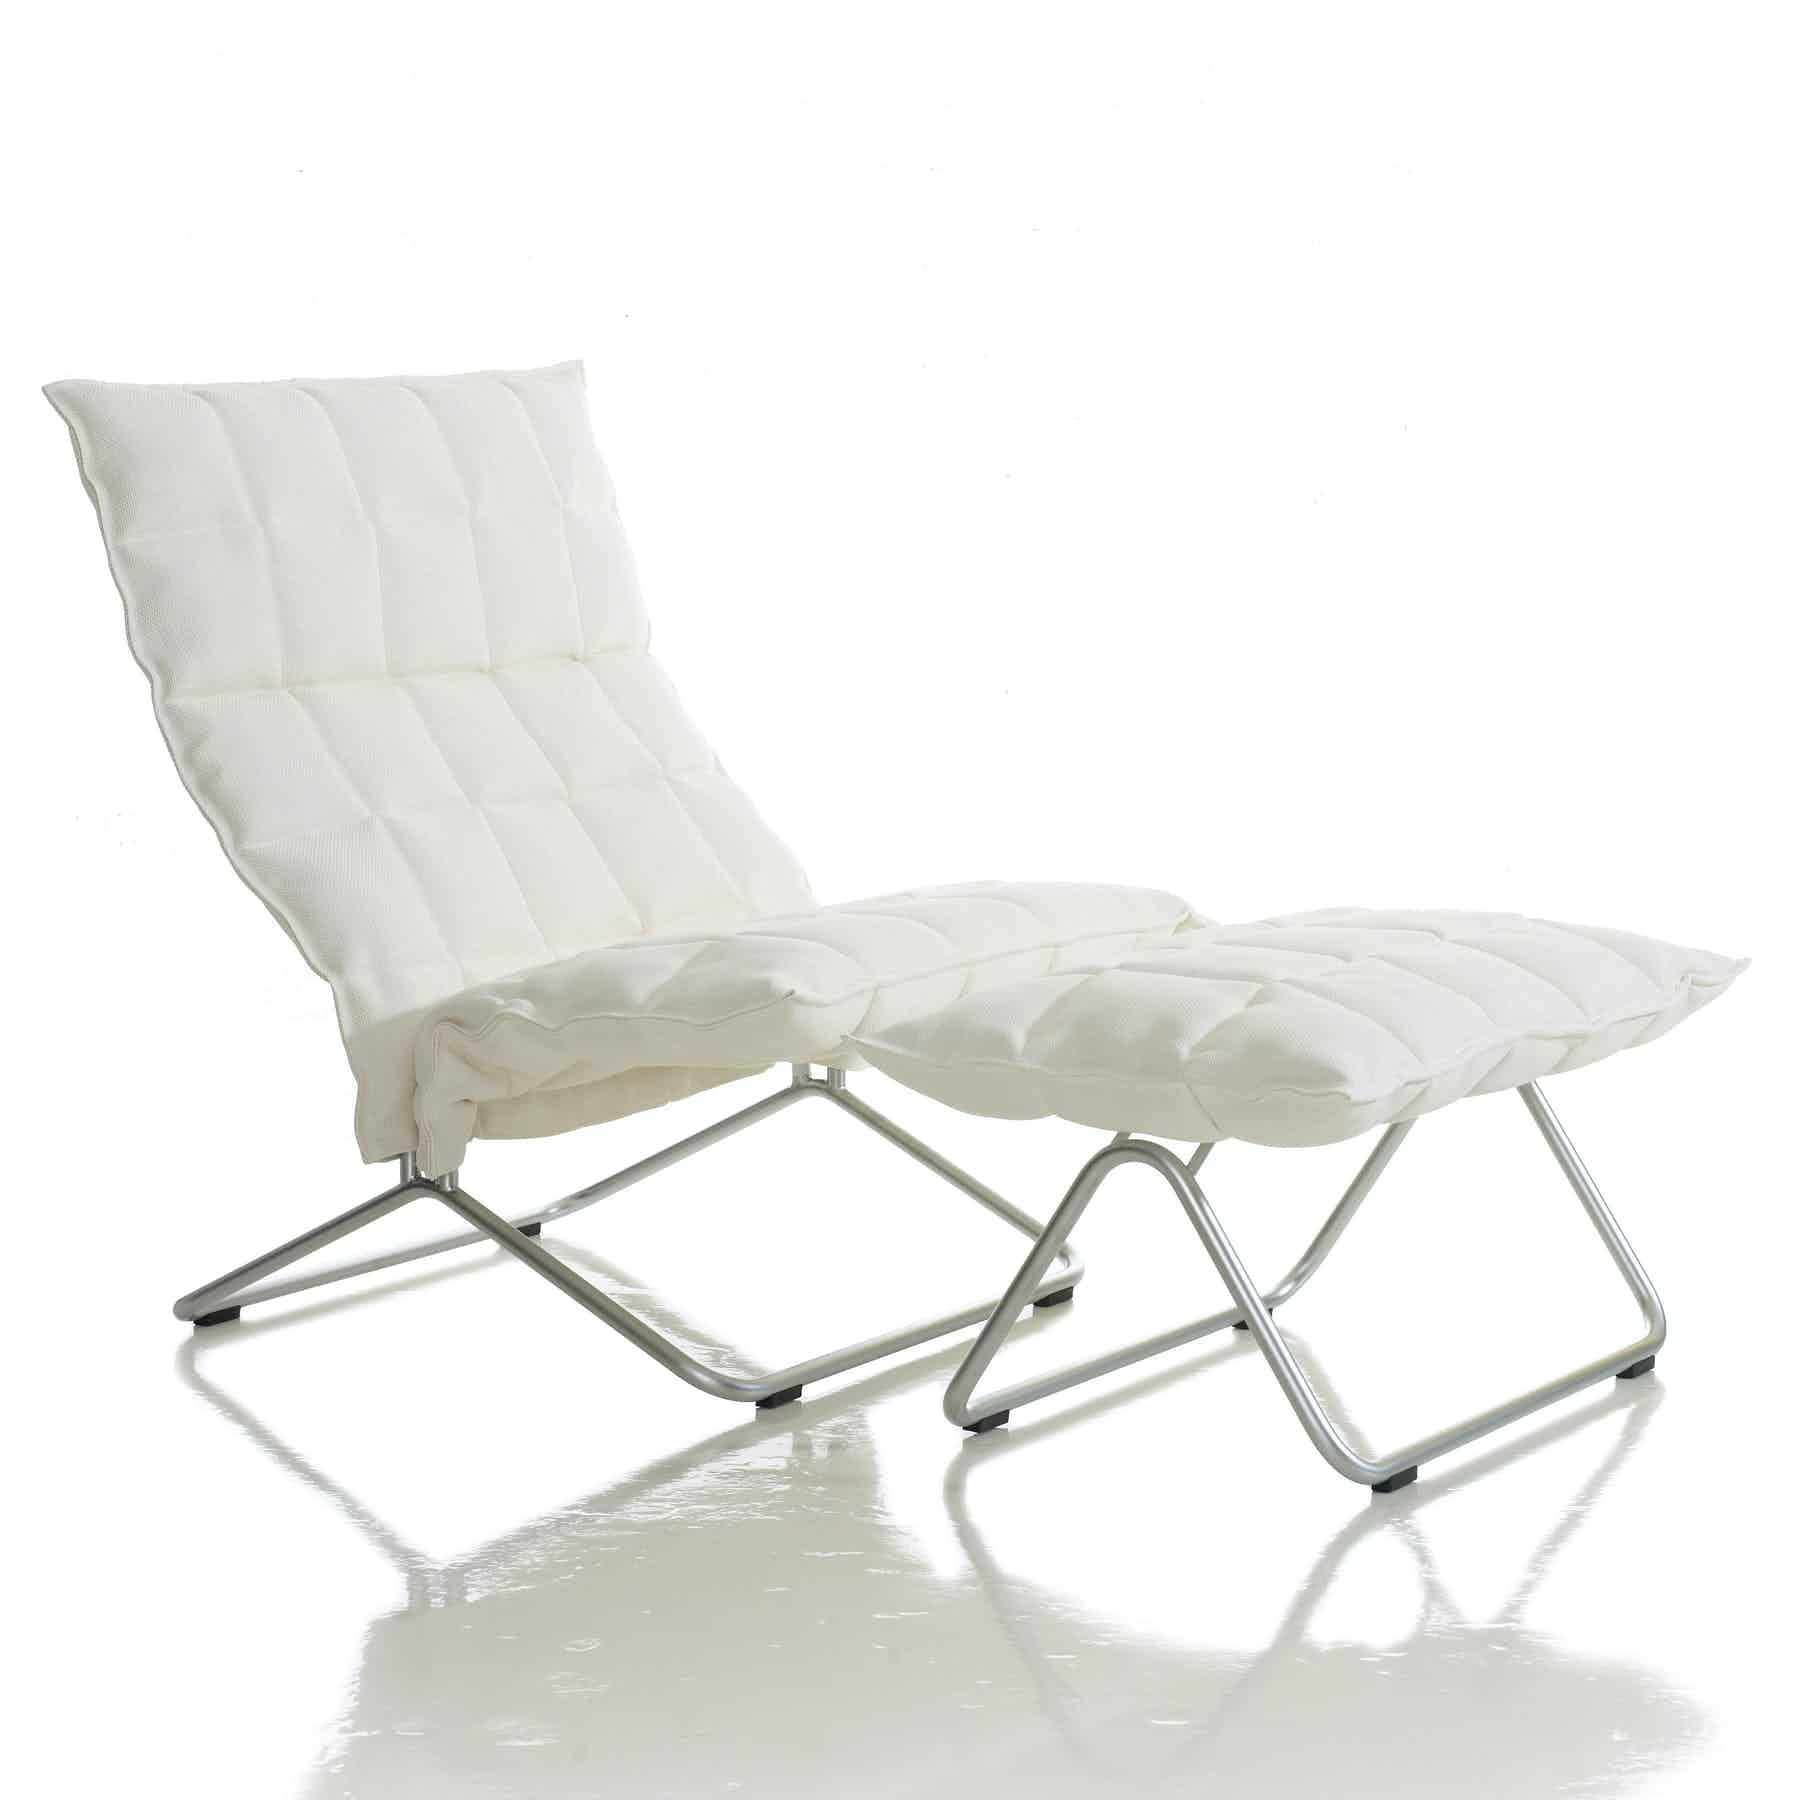 46001 Wide K Chair And 46011 Wide K Ottoman With Tubular Feet